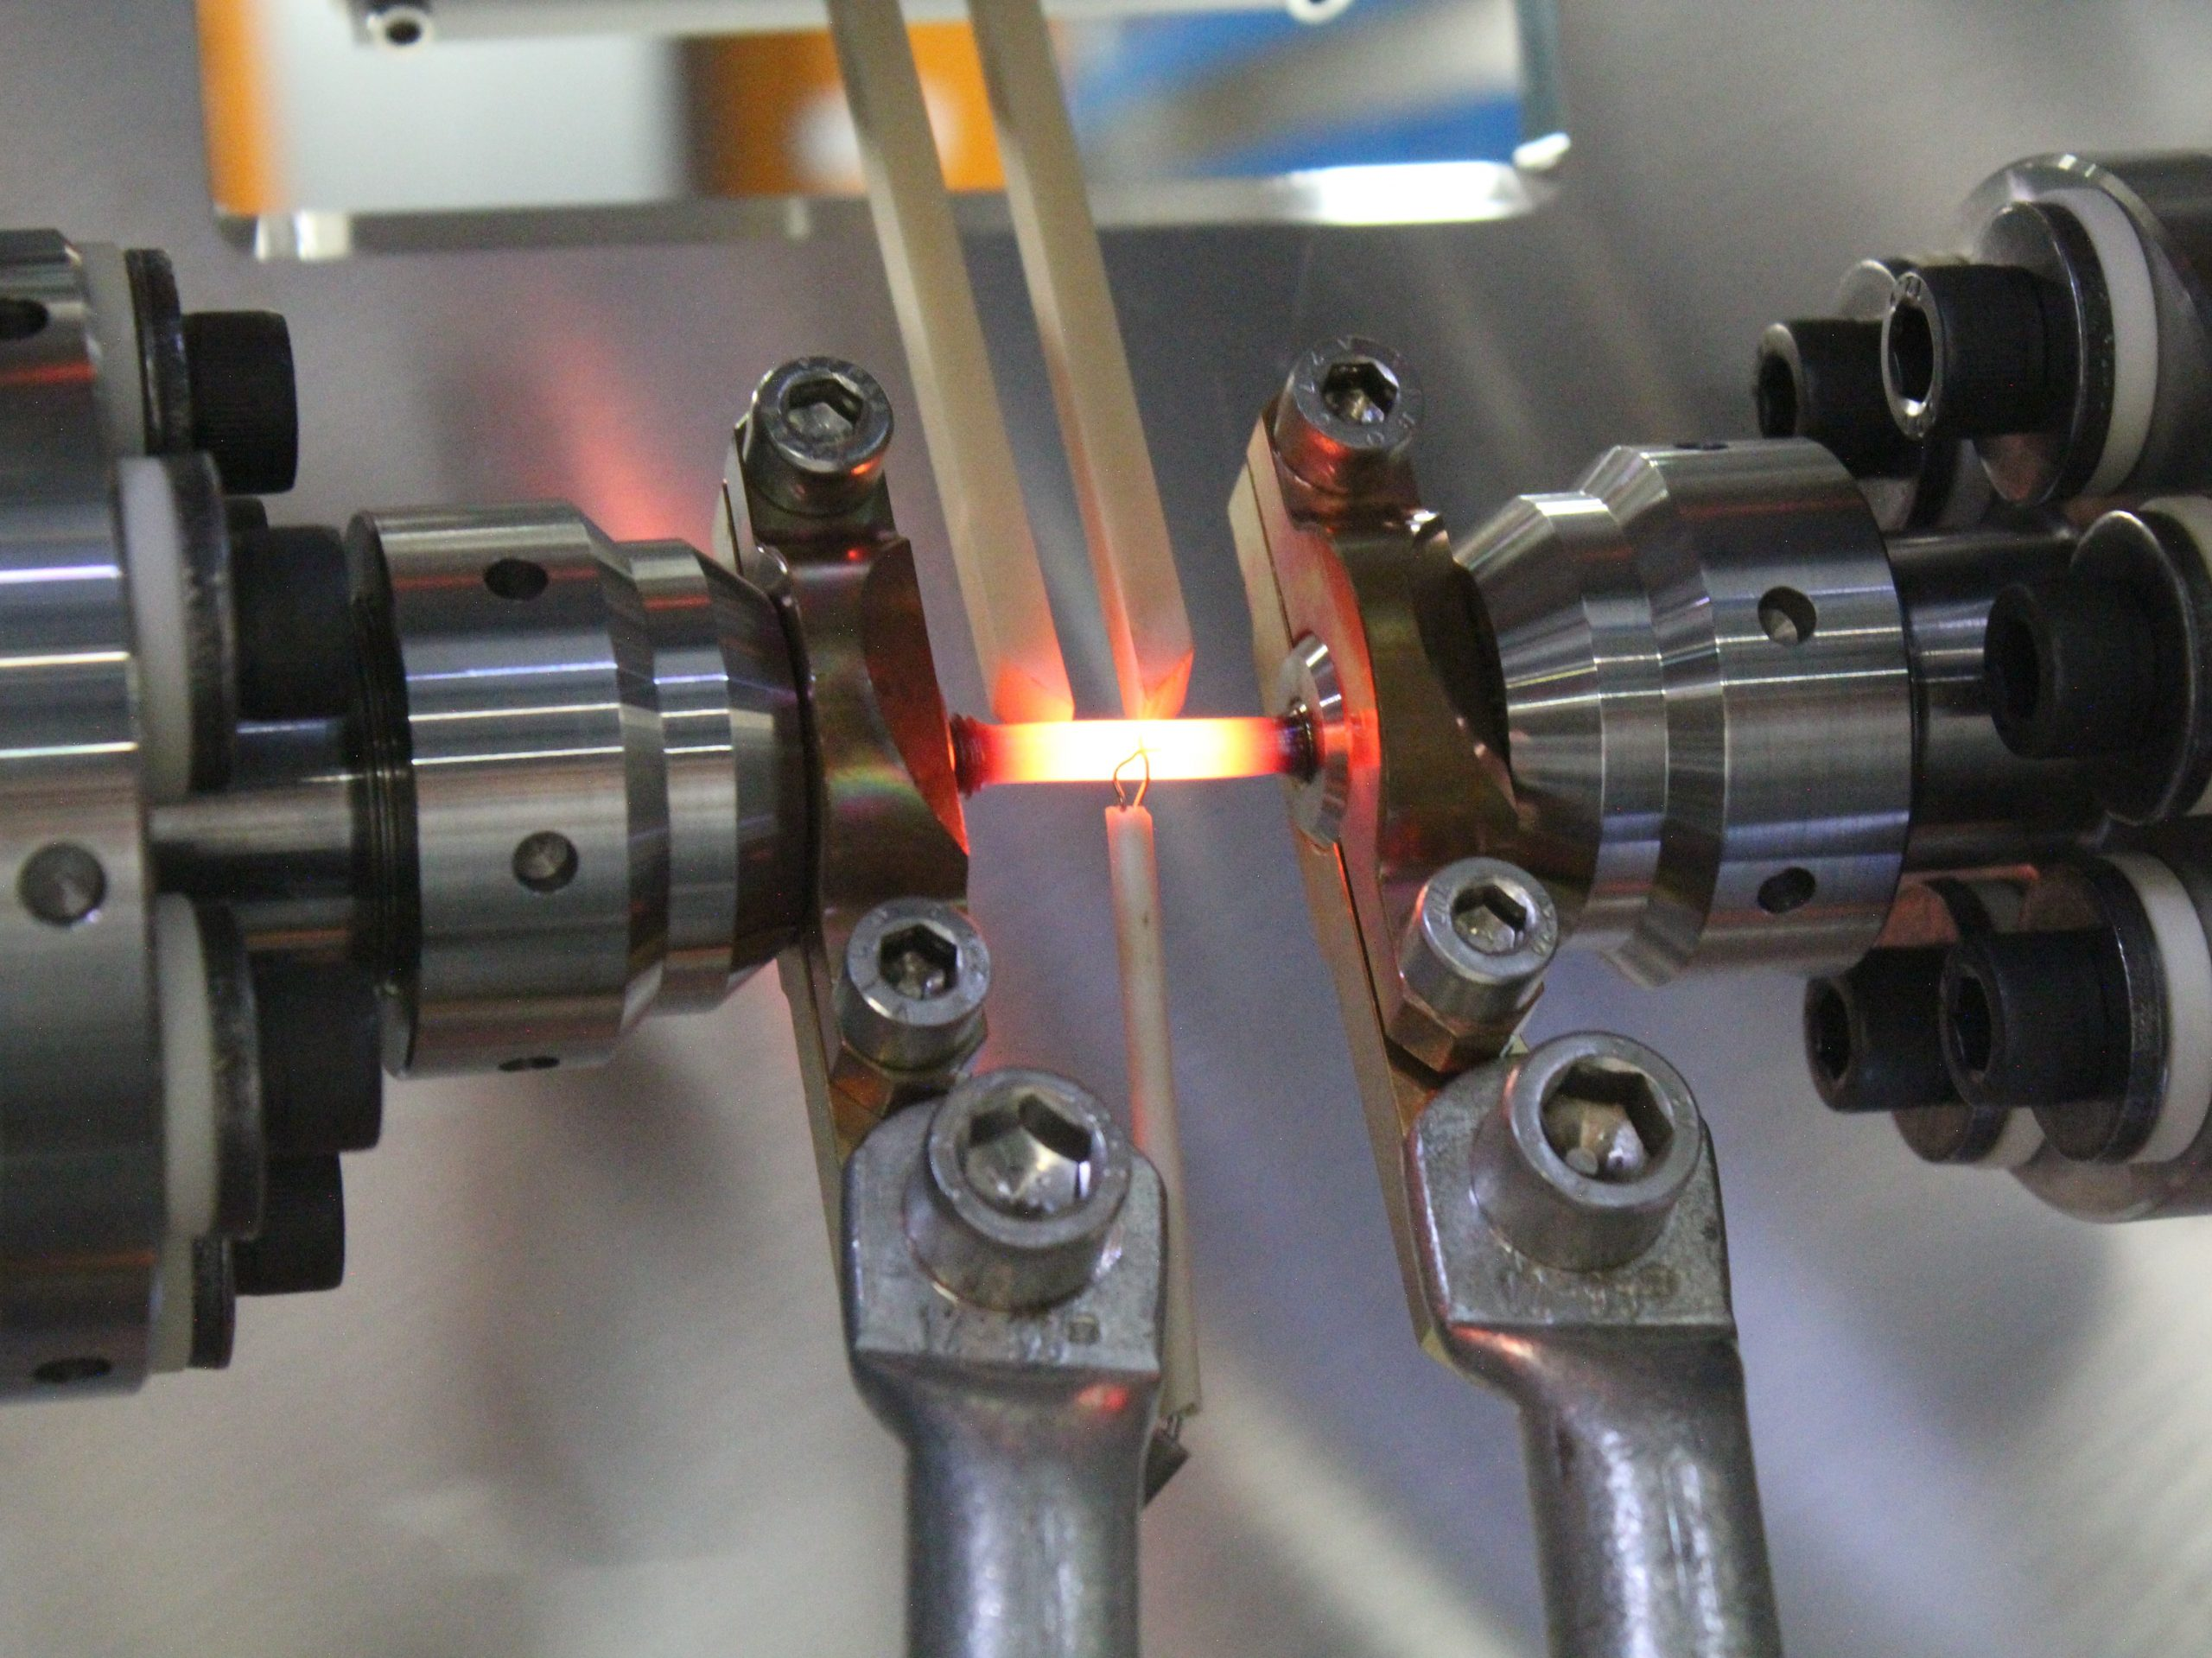 Pressure and heat: Testing alloys for gas turbines